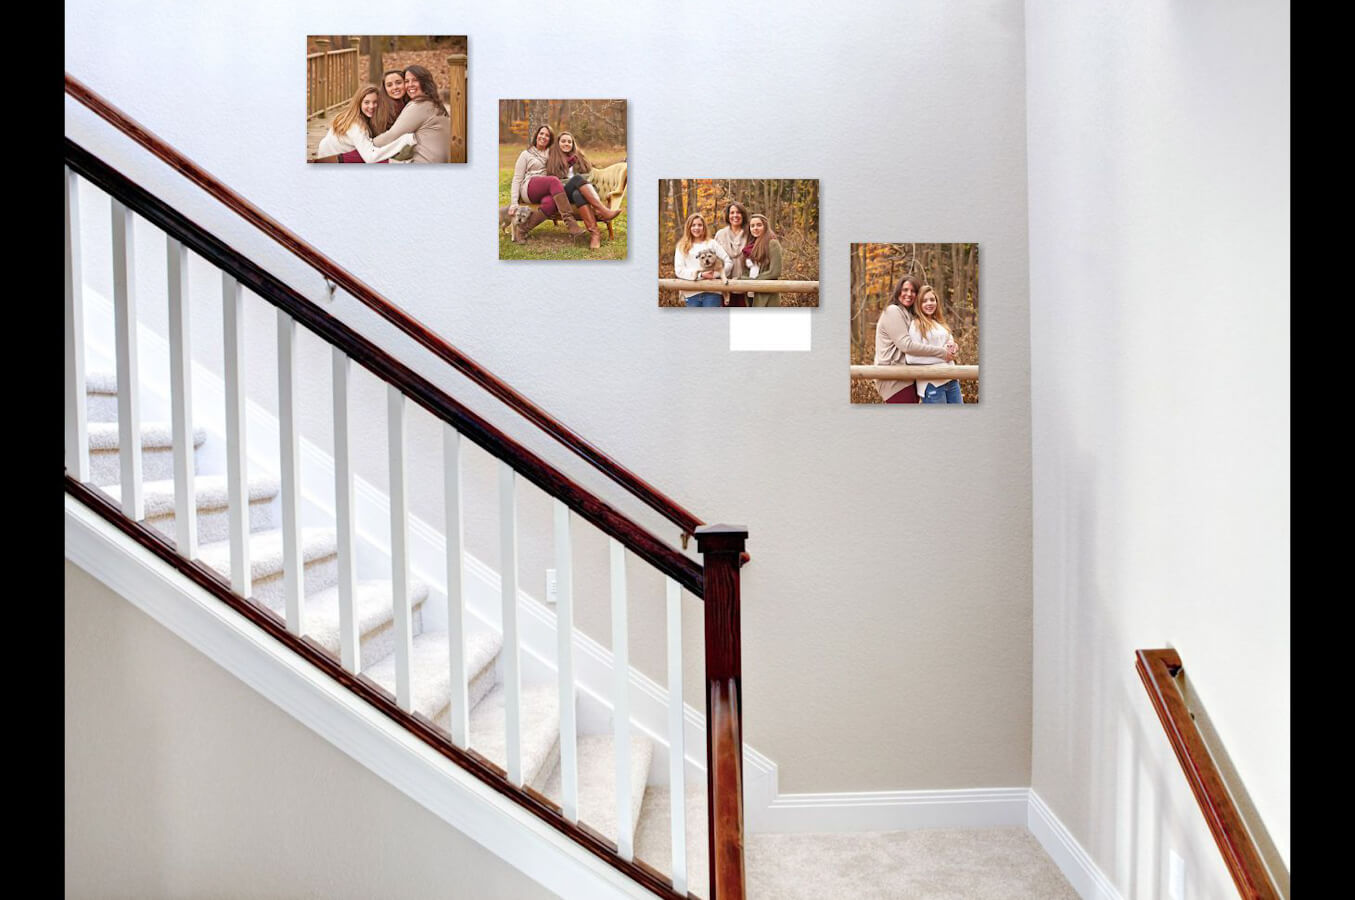 photography websites mclean va family photographer near me wall art for your stairway. Black Bedroom Furniture Sets. Home Design Ideas